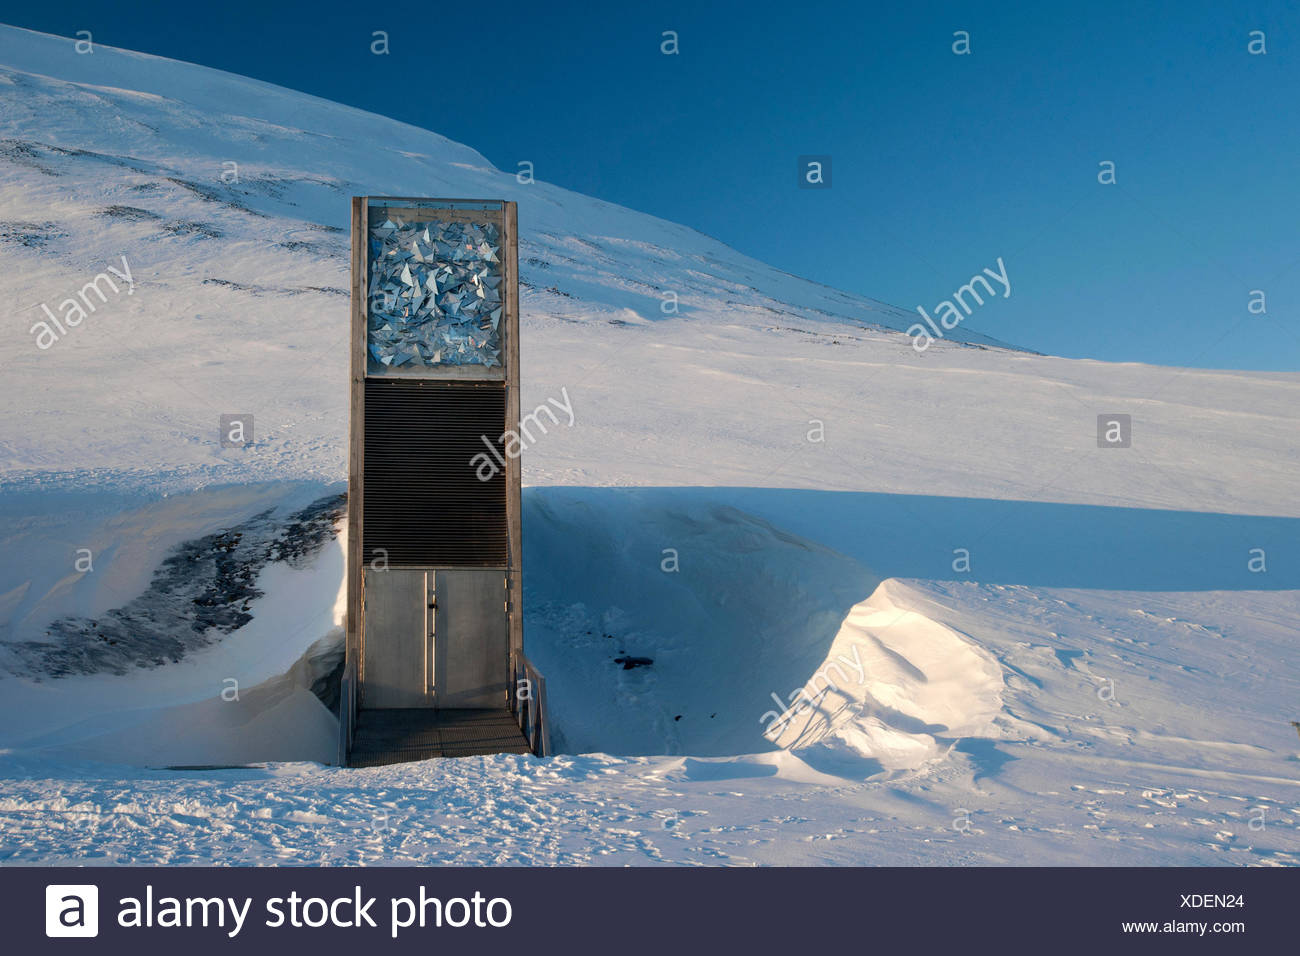 """The entrance to the """"Svalbard Global Seed Vault"""", Longyearbyen, Spitsbergen, Svalbard, Norway, Europe Stock Photo"""